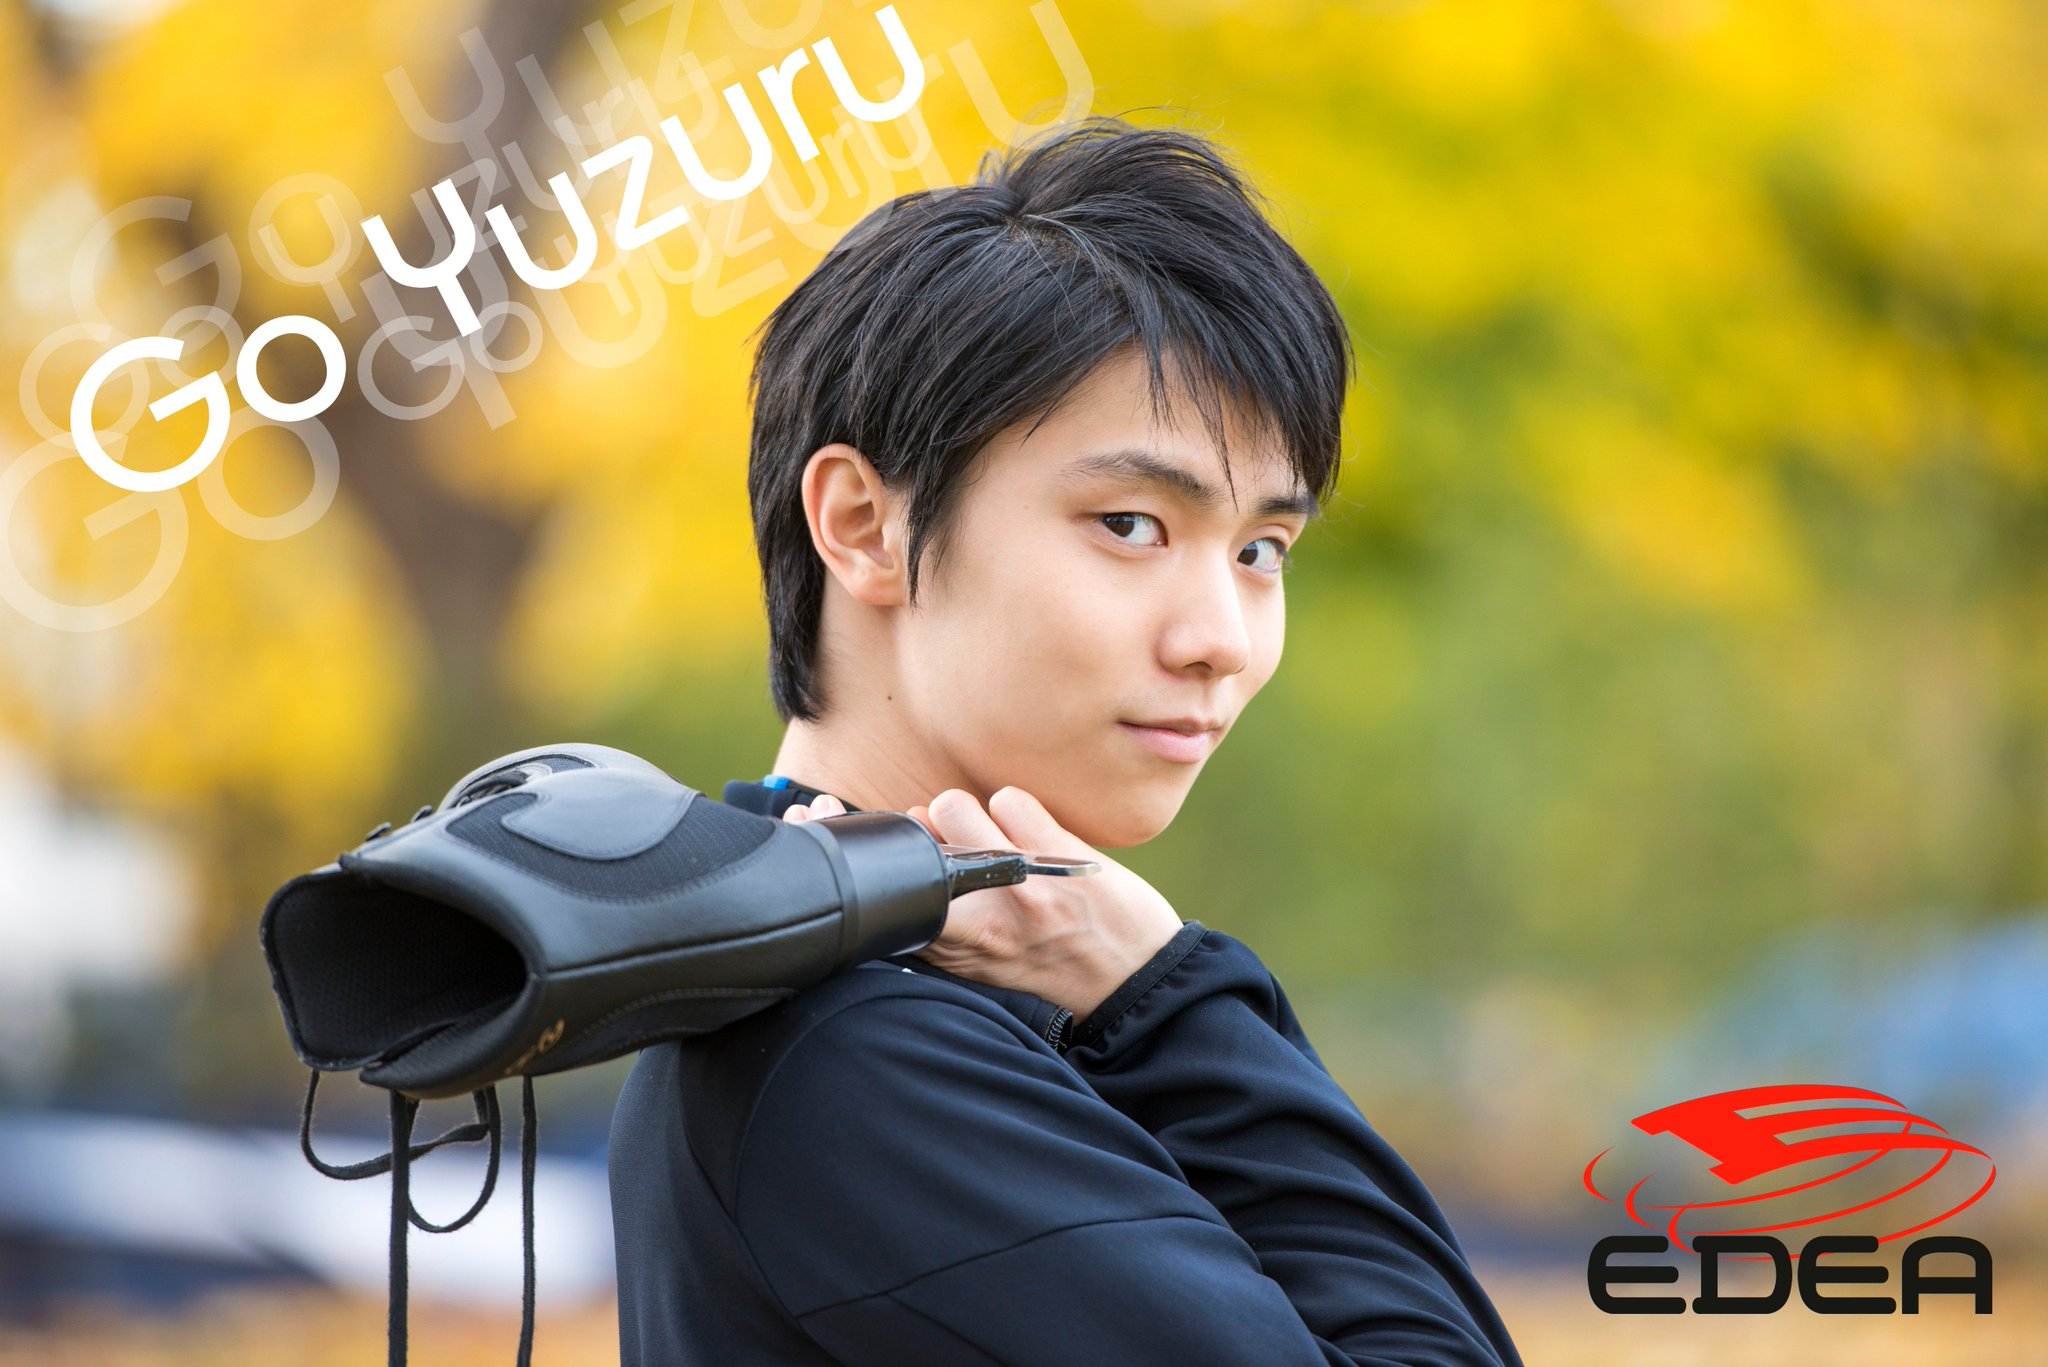 edea racing on twitter   u0026quot 22 28 yuzuru hanyu is on the ice